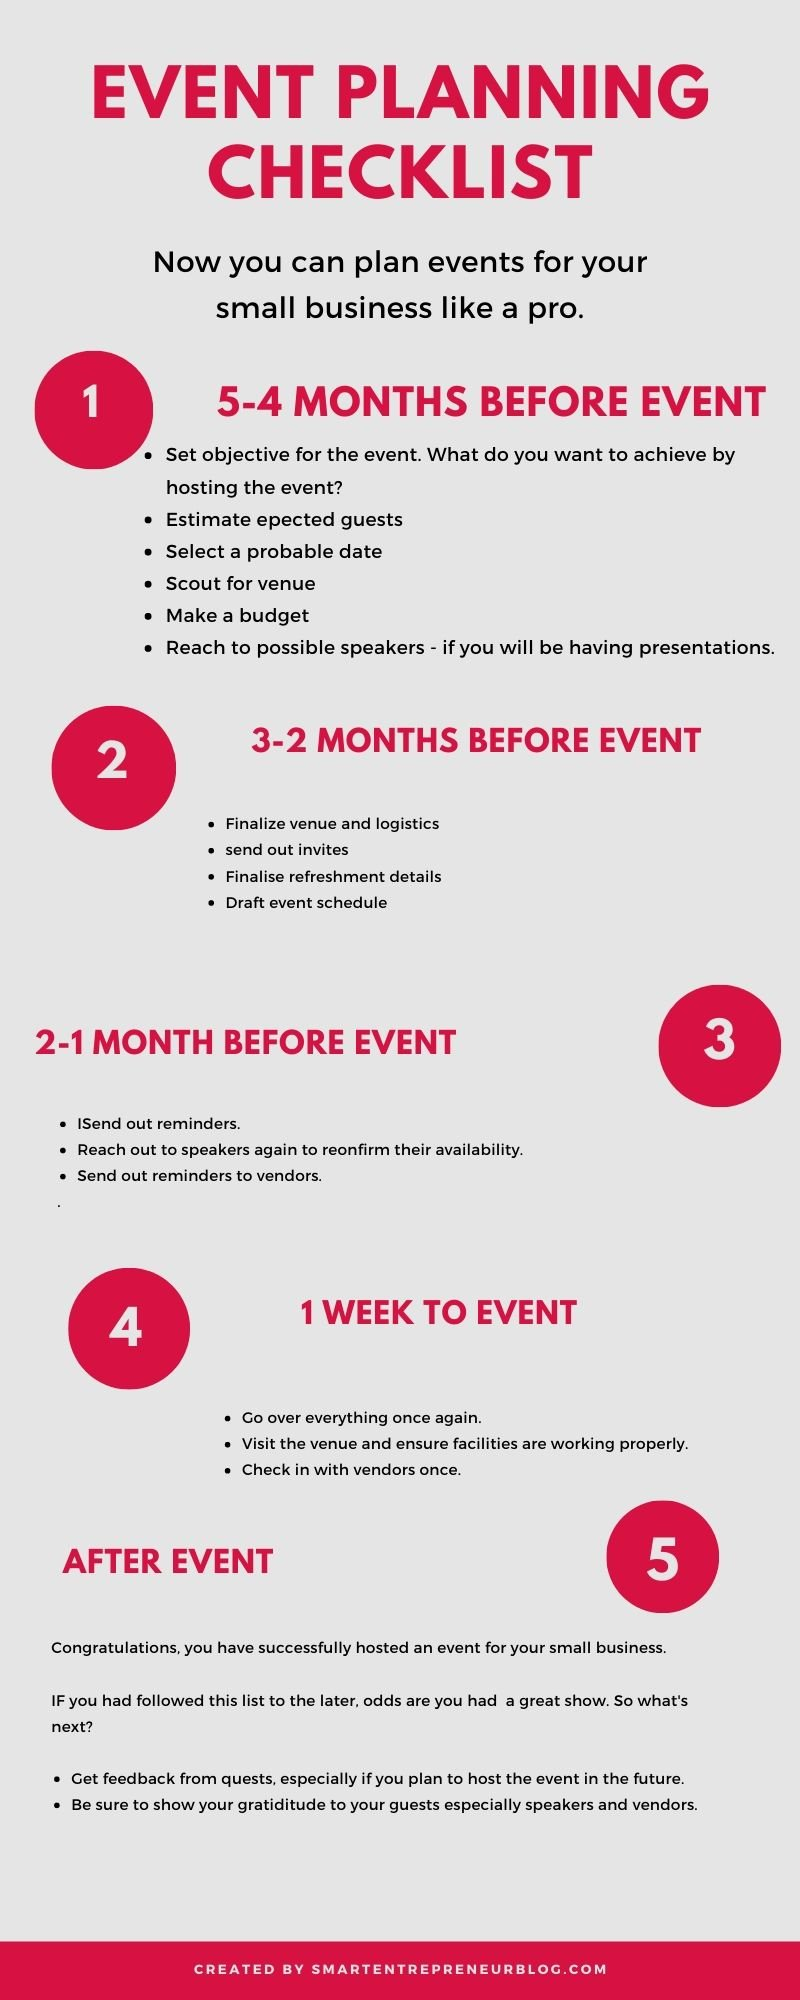 A Handy Corporate Event Planning Checklist To Help You Organize Year-end Events for Your Business